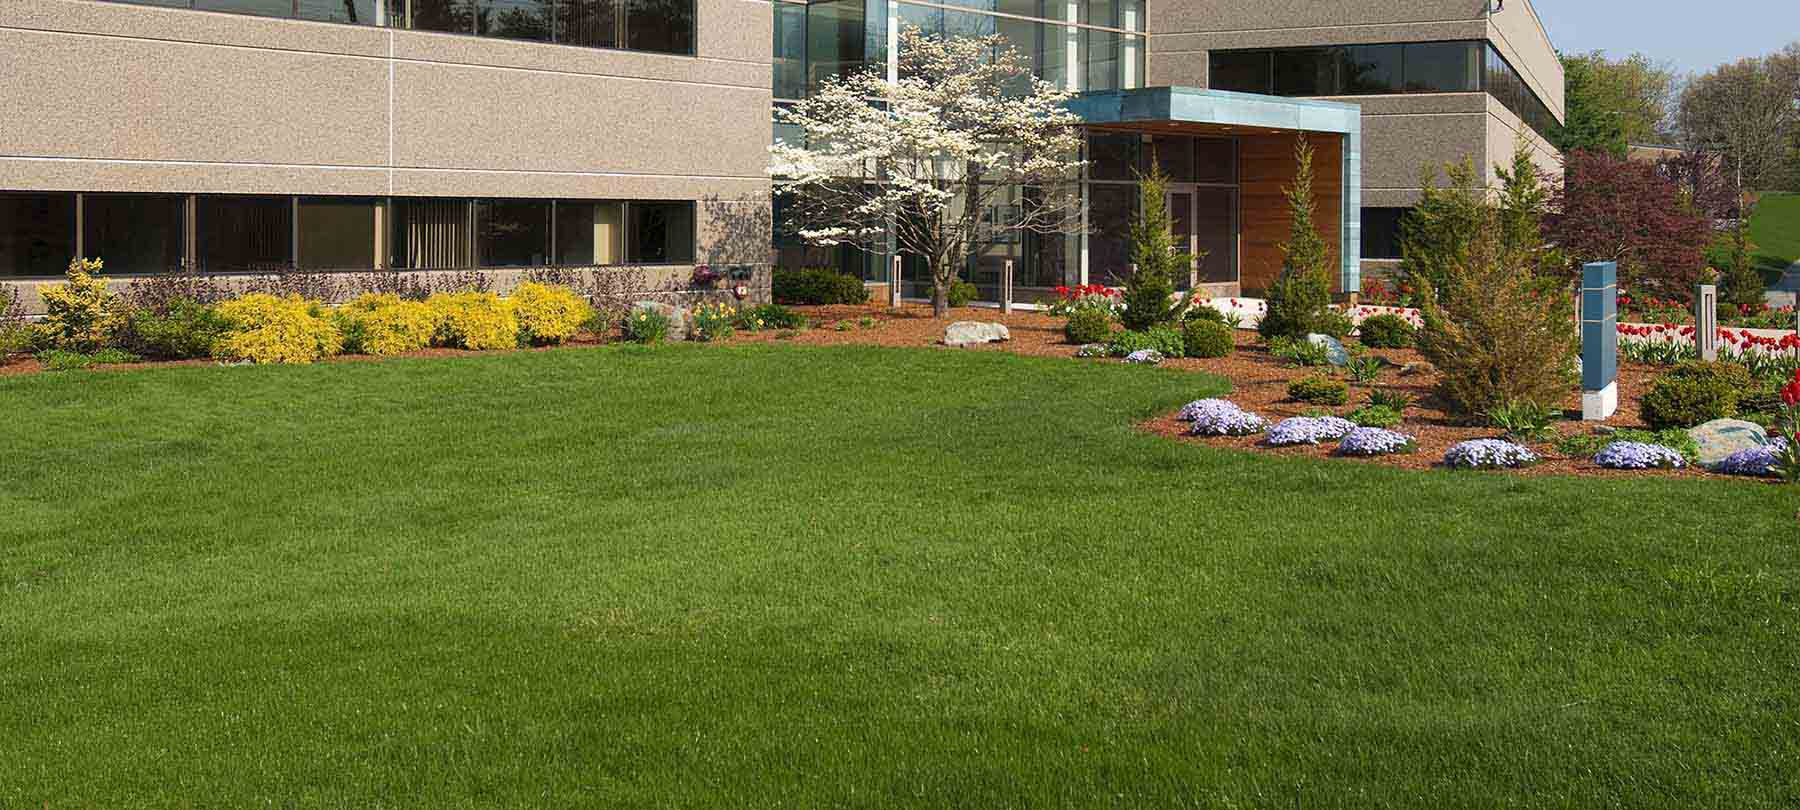 yard works - commercial landscaping services